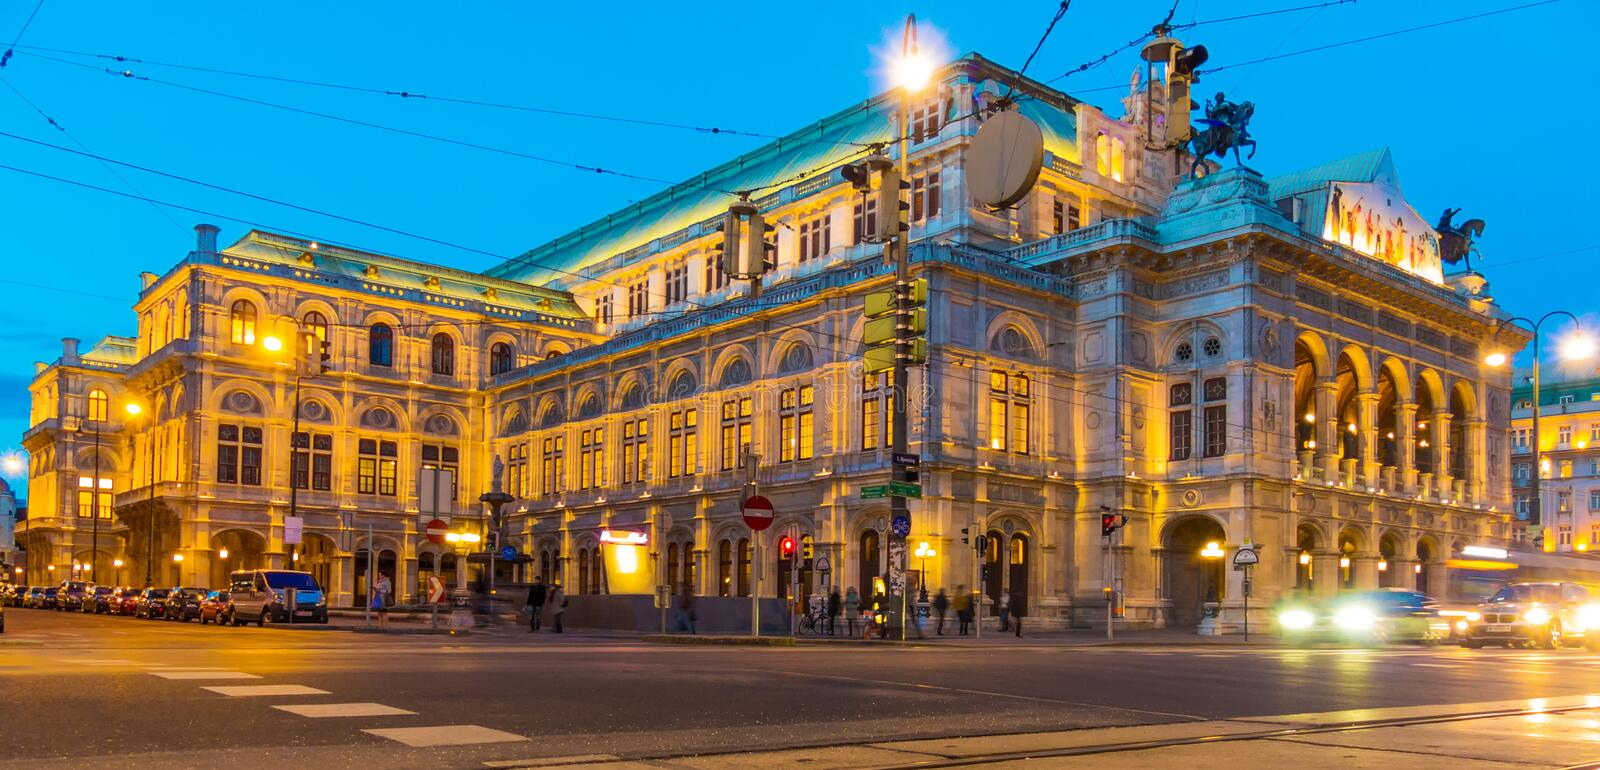 Vienna. austria. opera. The opera in vienna, austria. evening reception at dusk royalty free stock image